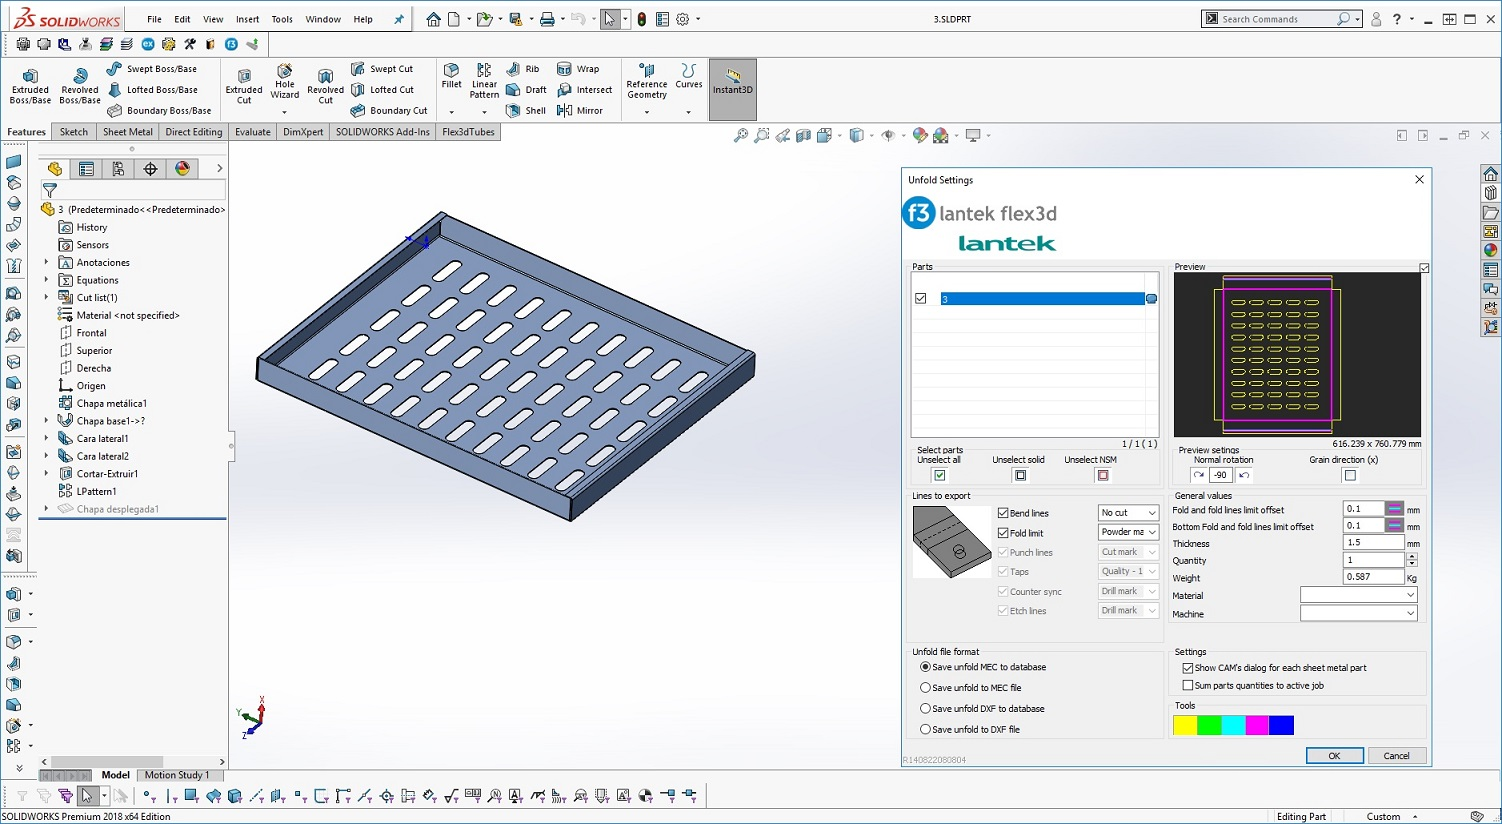 Import native CAD drawings from CAD systems - Lantek Flex3d